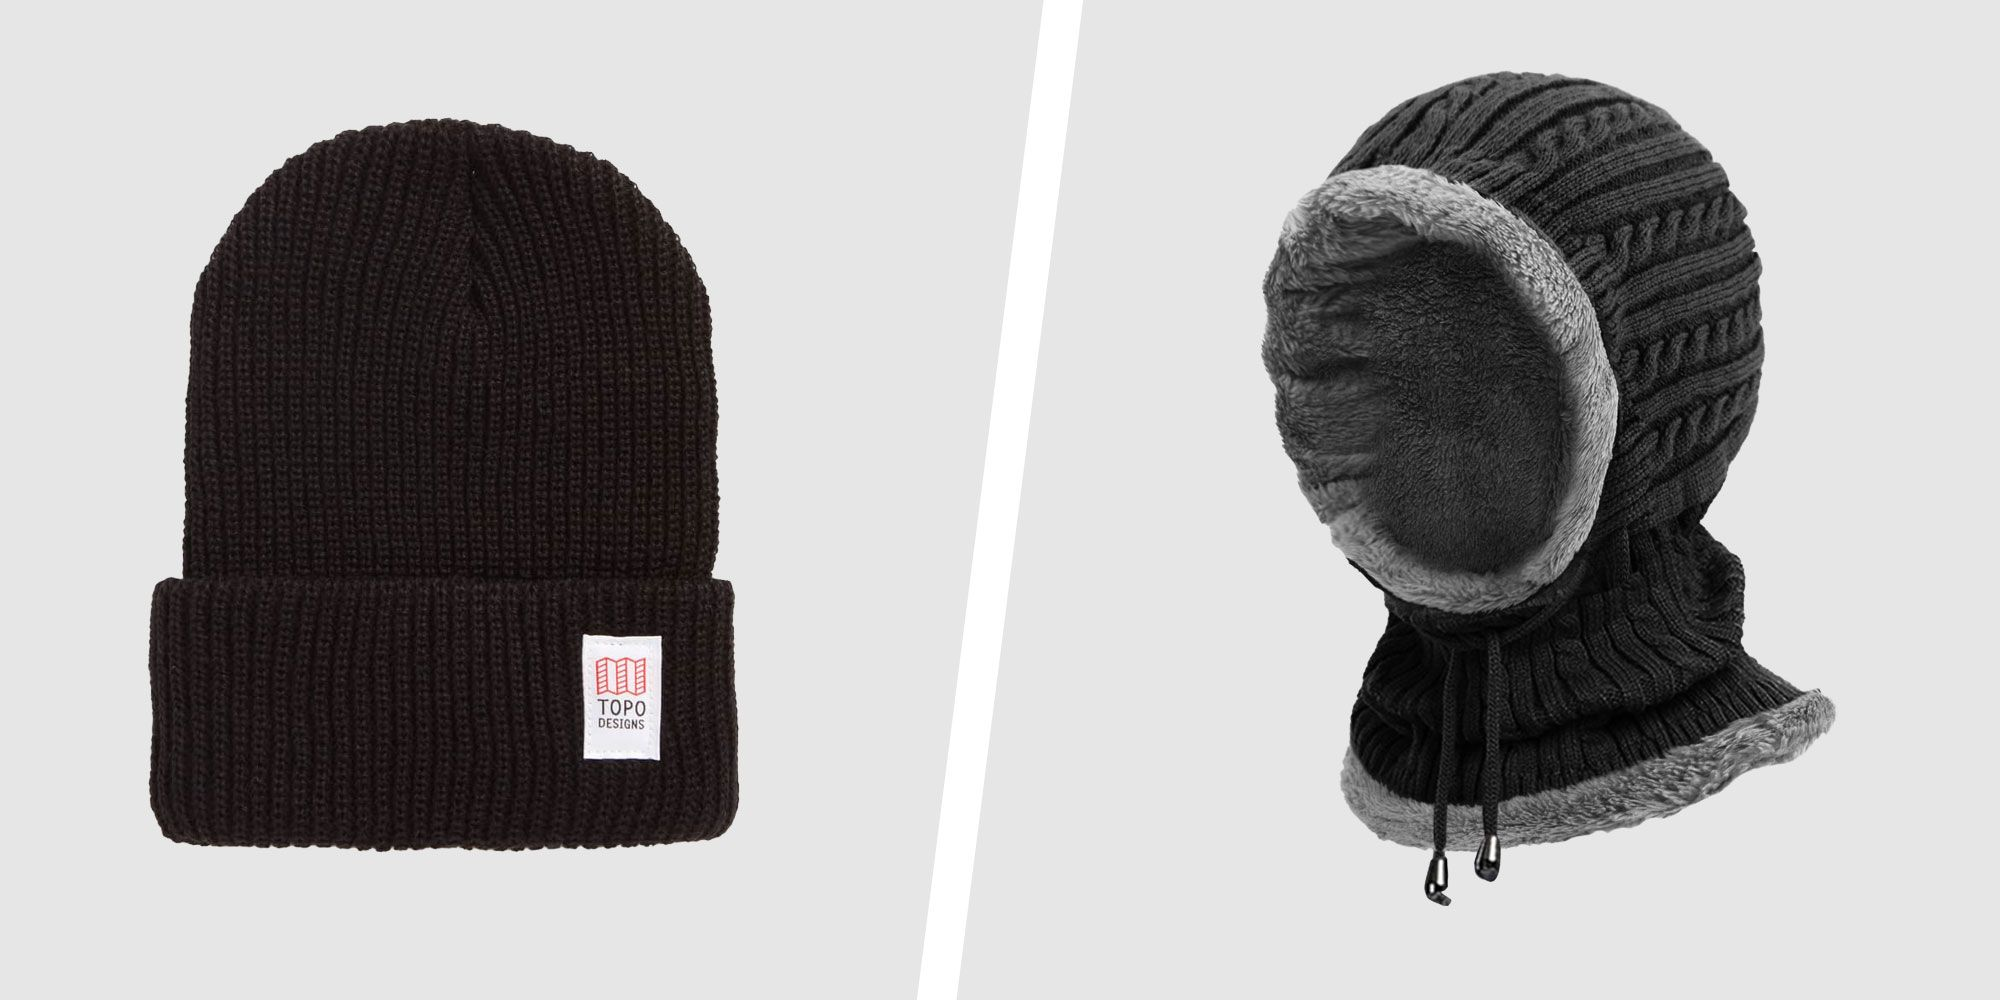 7 Best Winter Hats 2018 - Beanies 0bb4e6a0e3e